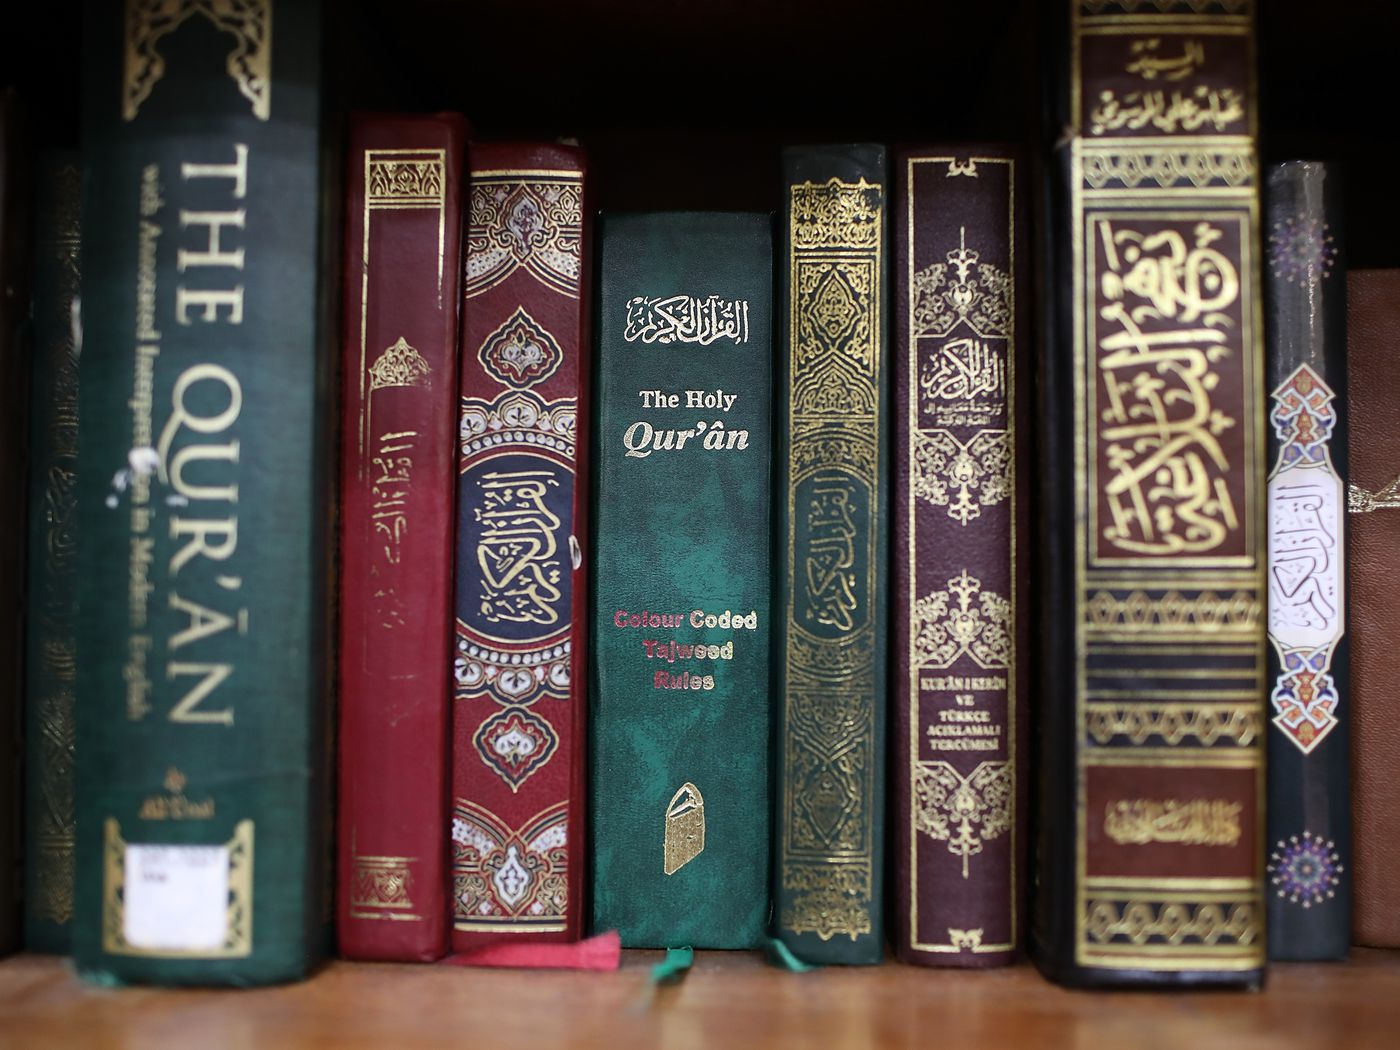 Muslims, Atheists More Likely to Face Religious Discrimination in the United States